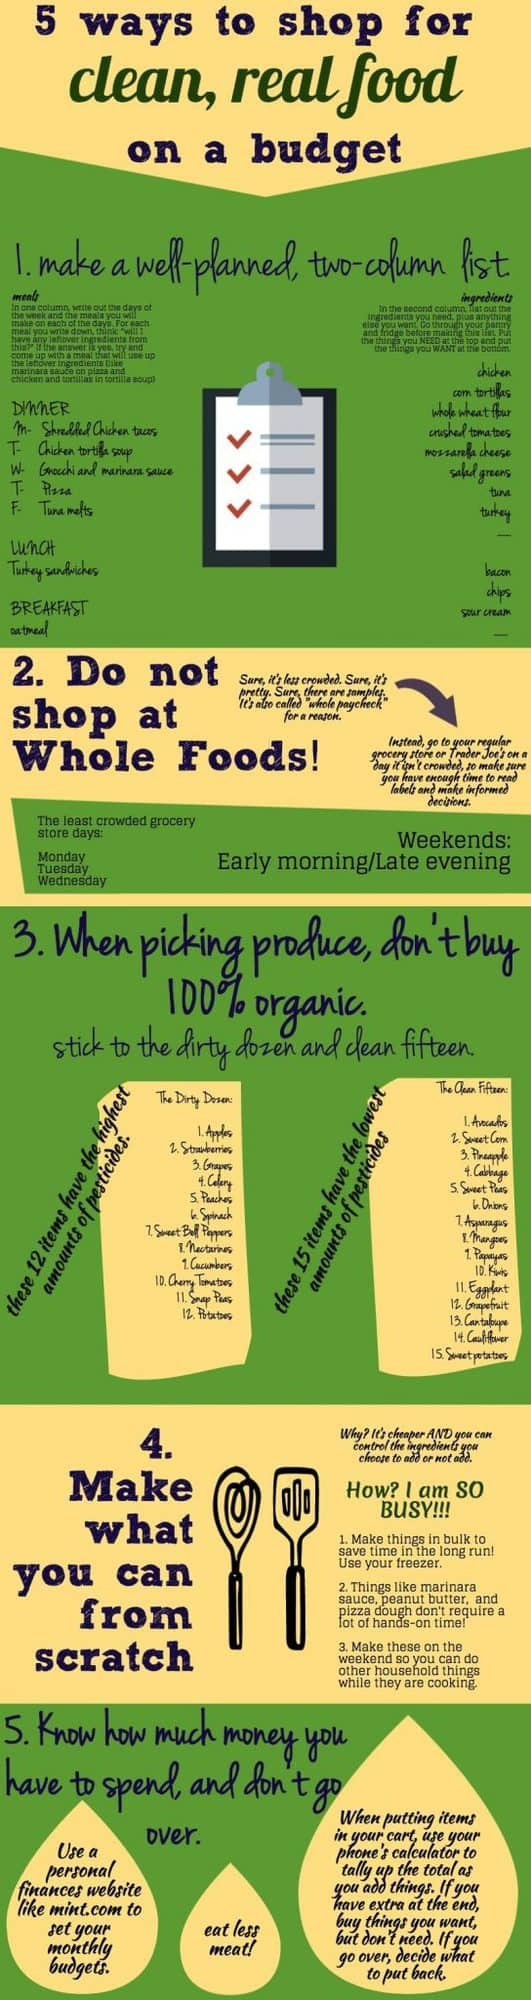 Clean Eating Meal Plans On A Budget  5 ways to shop for clean real food on a bud